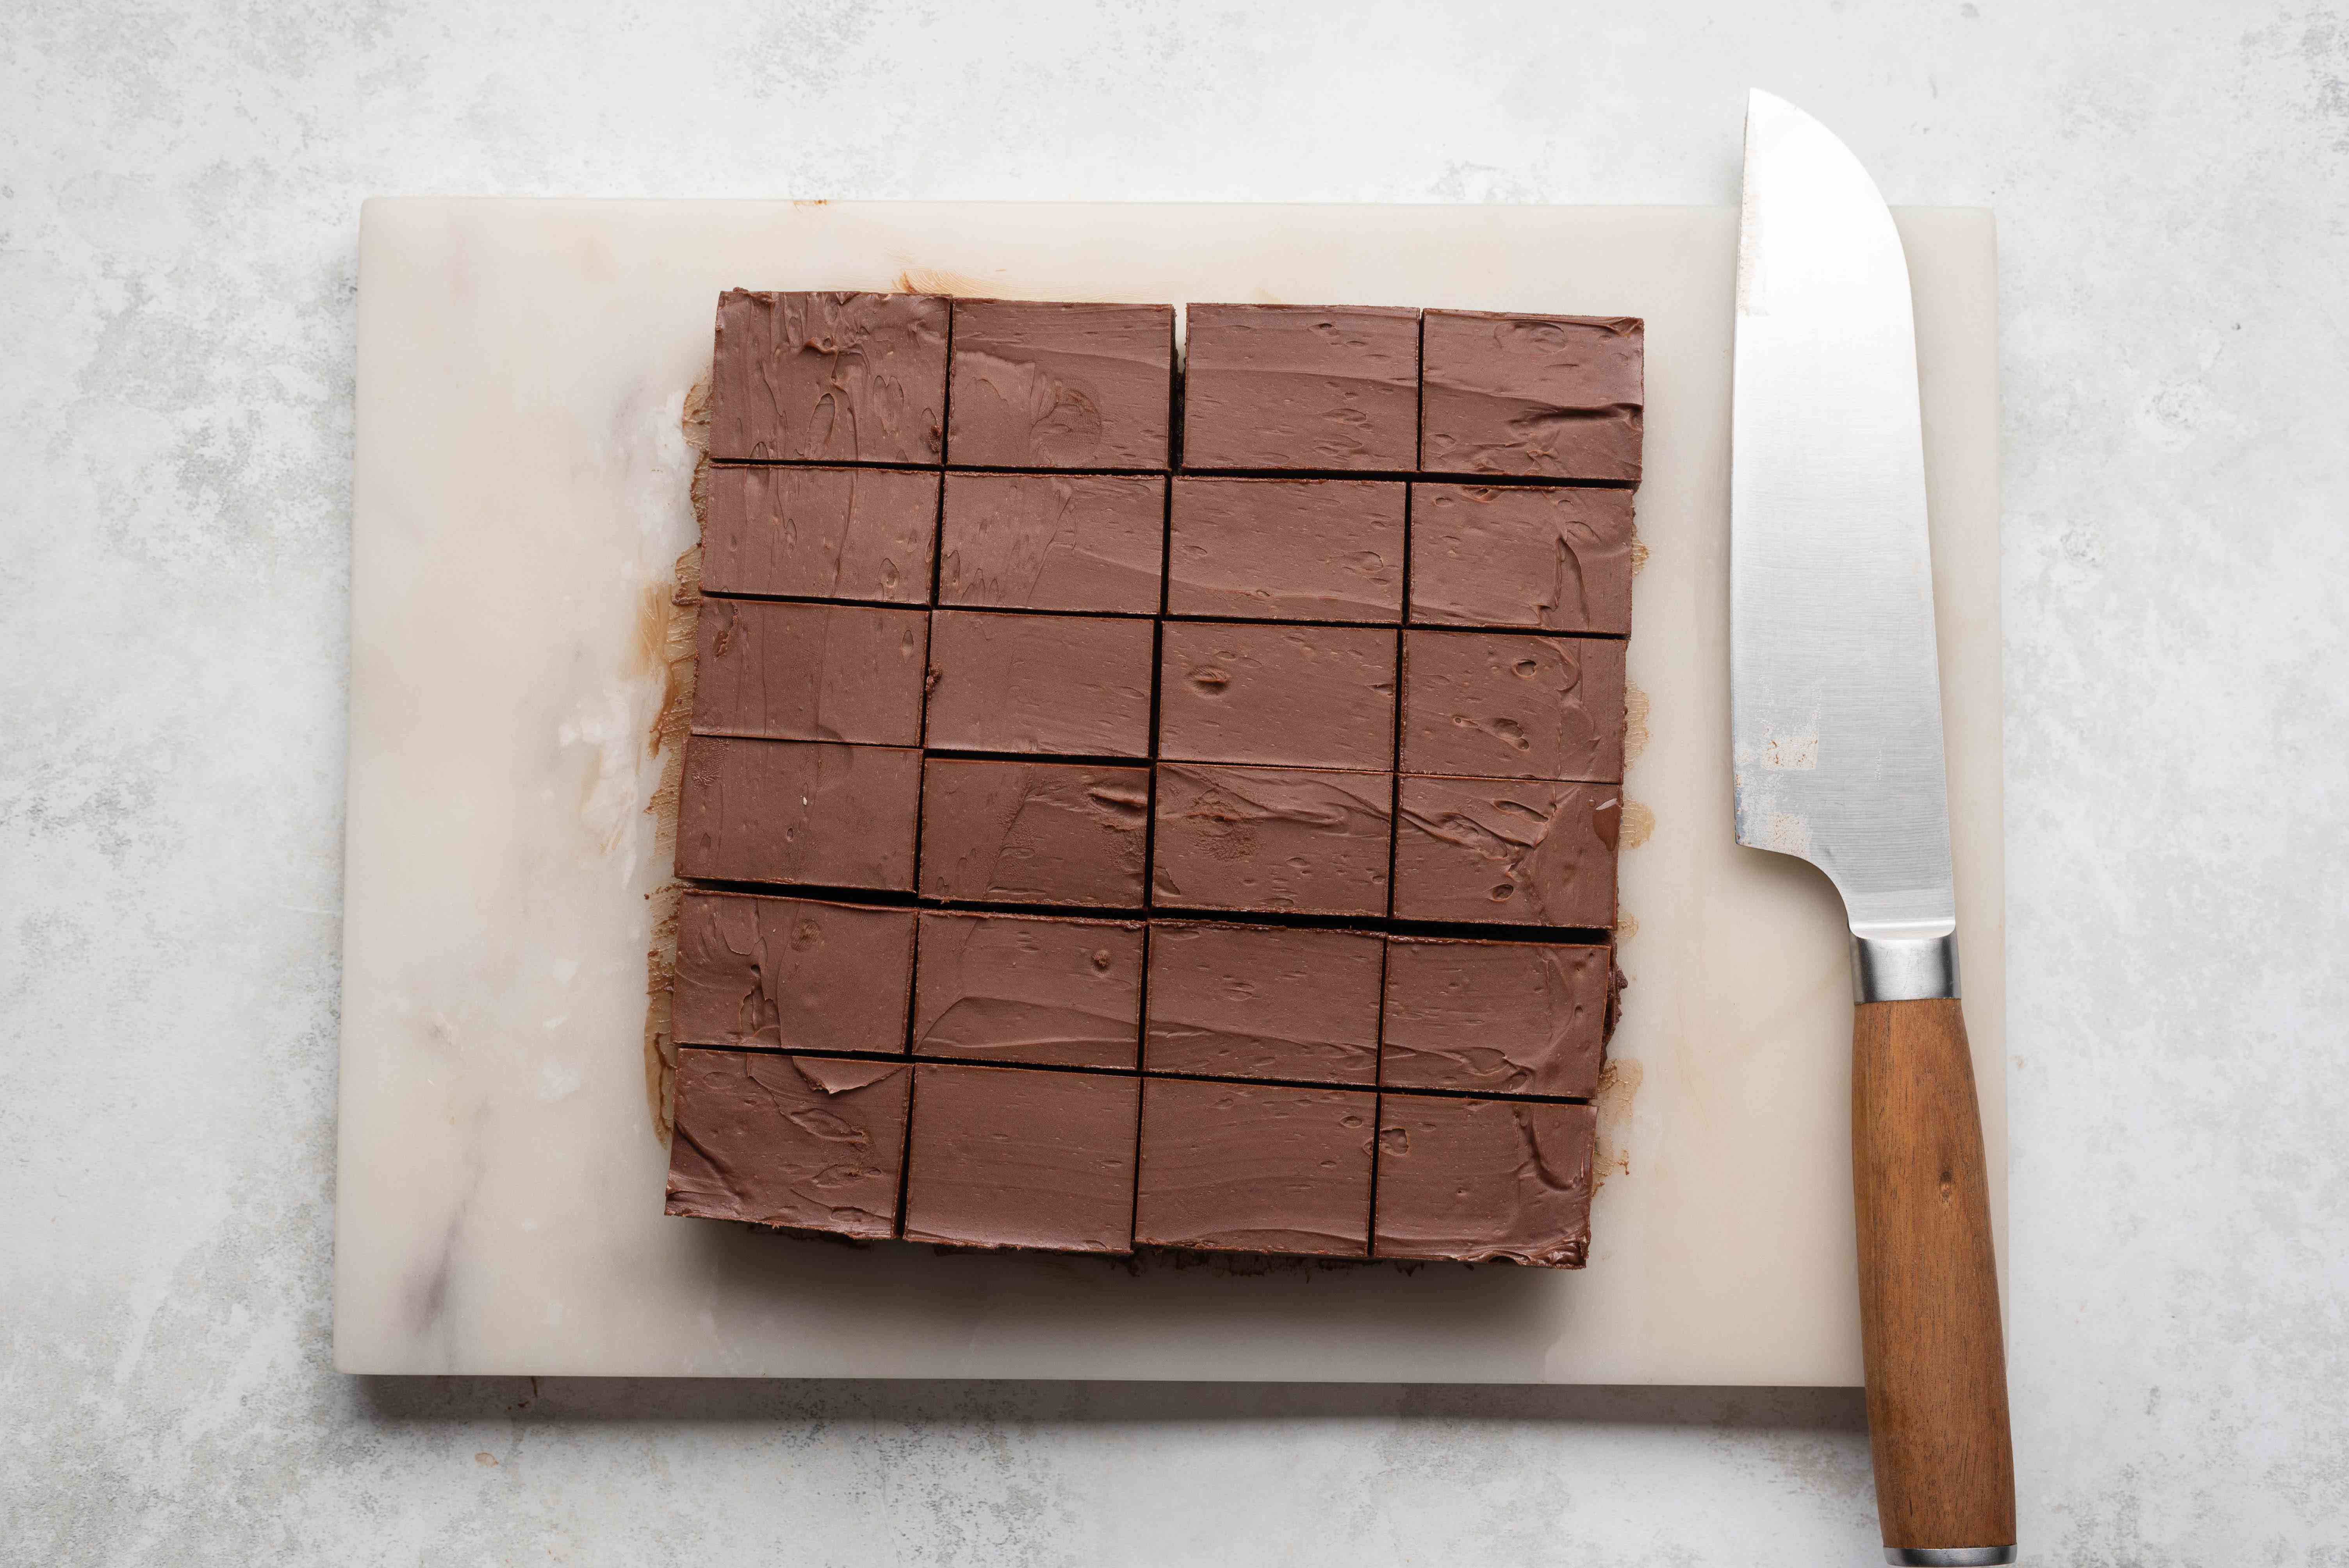 chocolate square cut into pieces on a cutting board